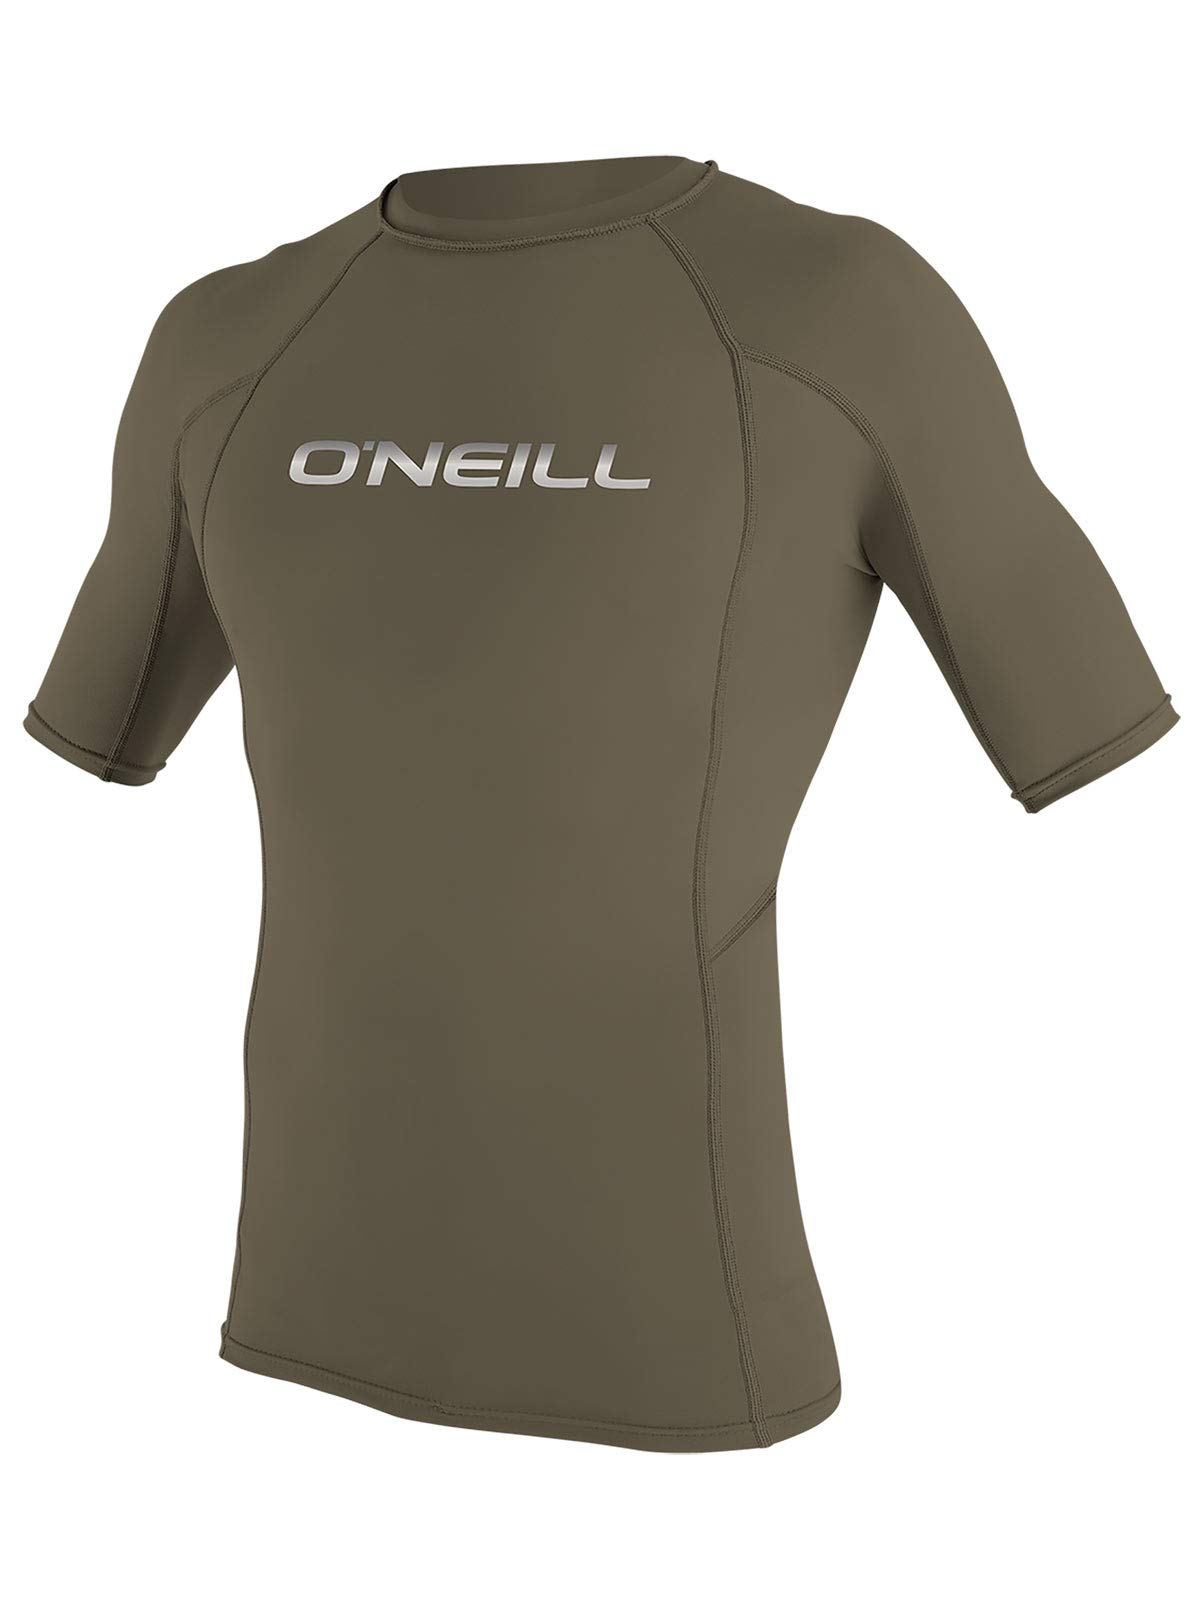 O'Neill Men's Basic Skins Short Sleeve Rashguard 3XL Khaki (3341IB) by O'Neill Wetsuits